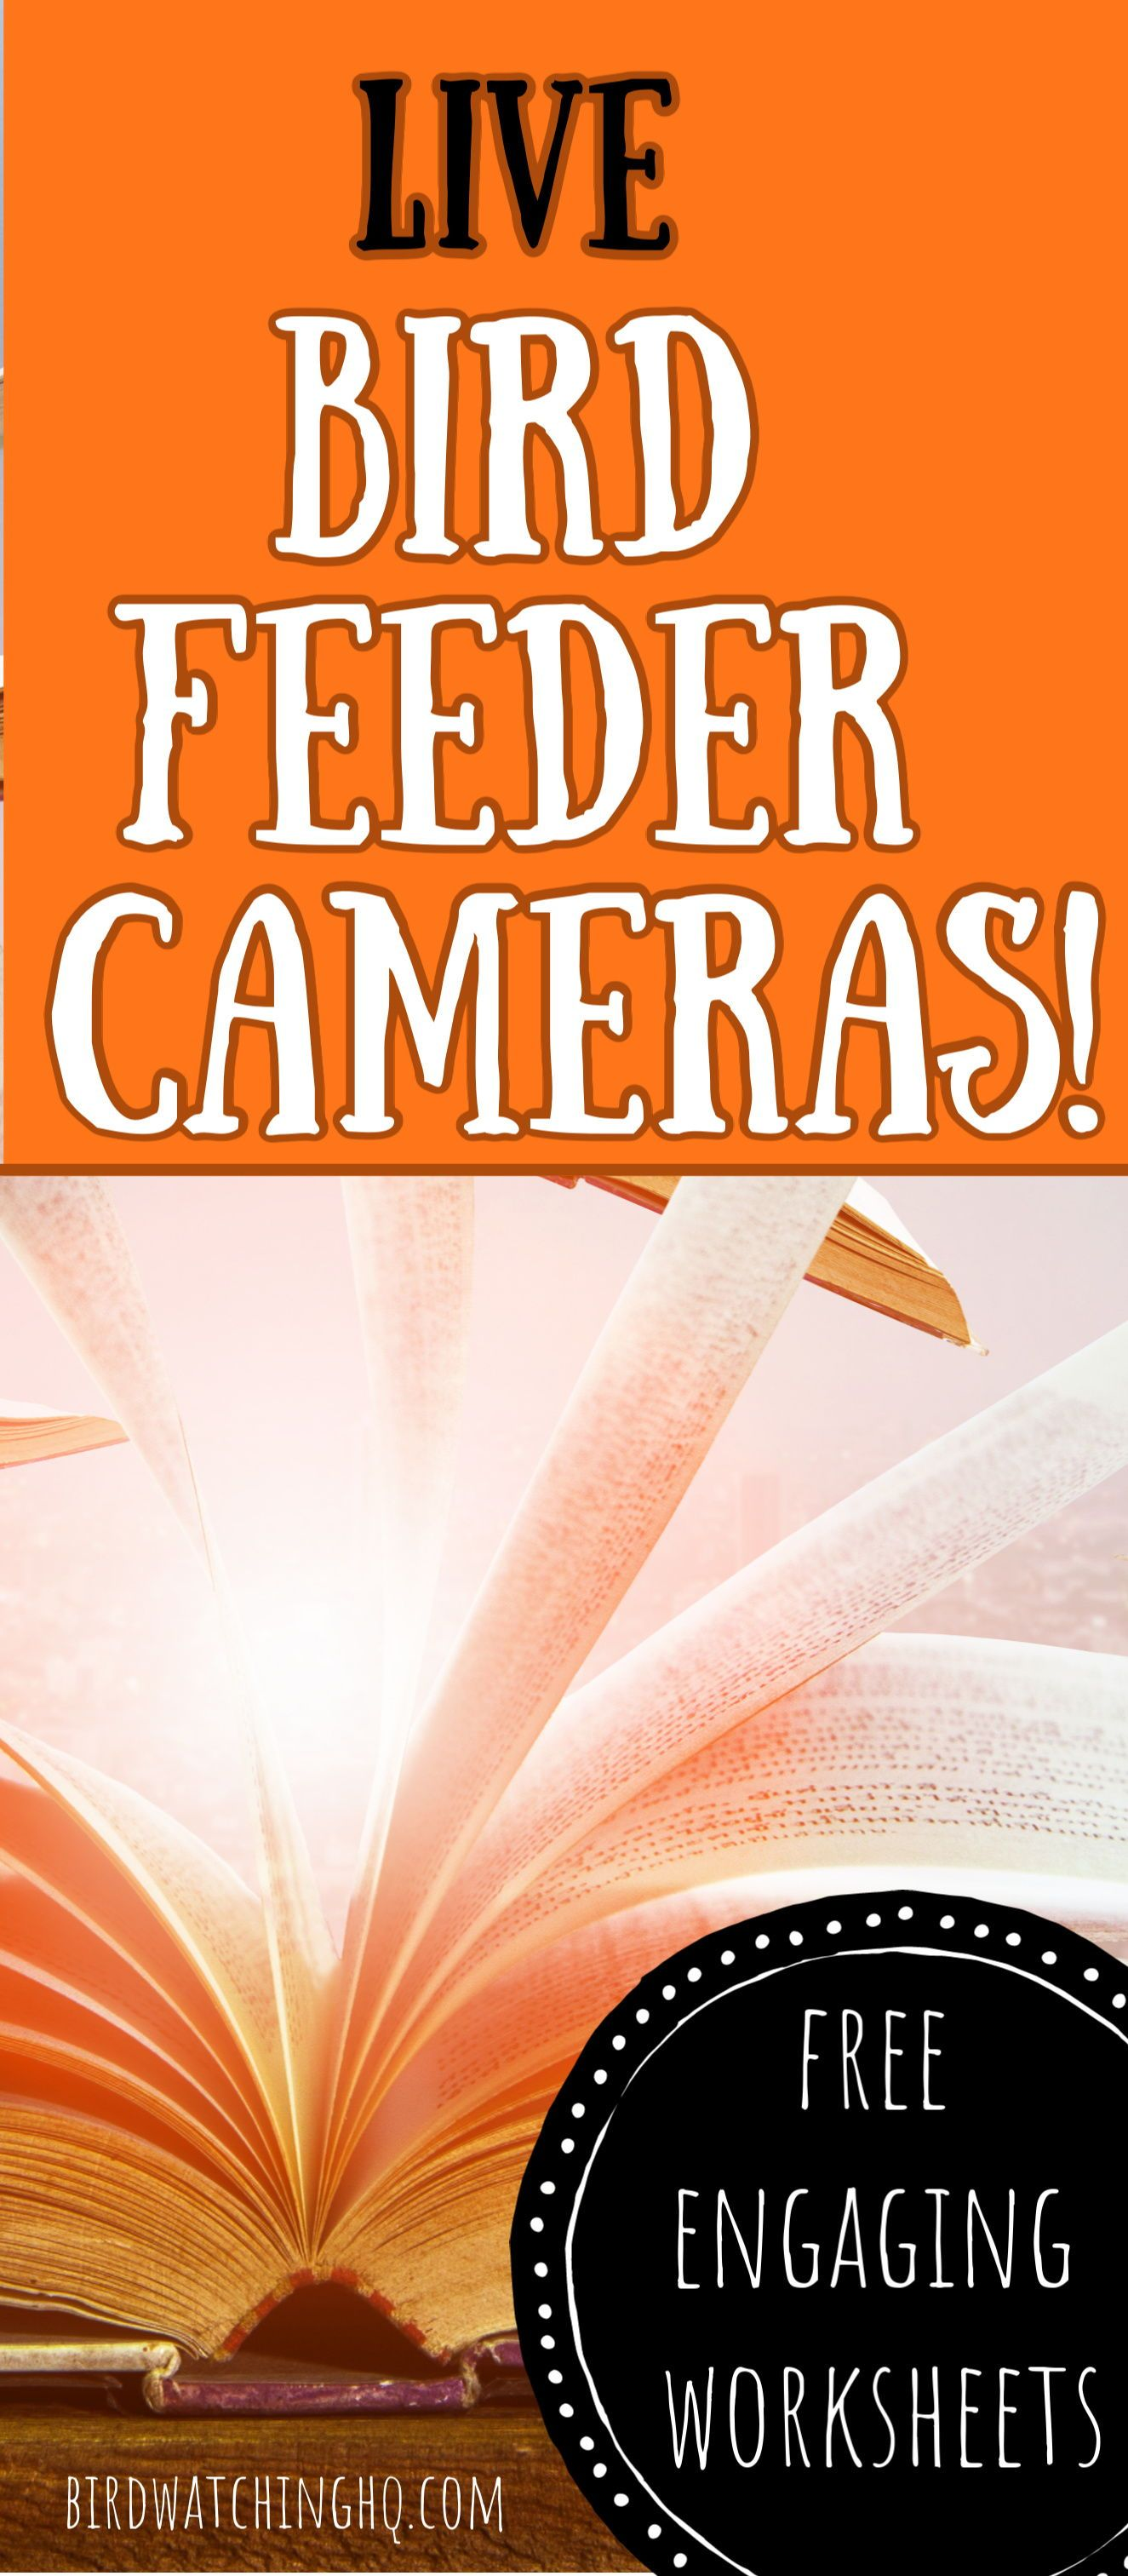 Worksheets To Use With The Live Animal Cameras